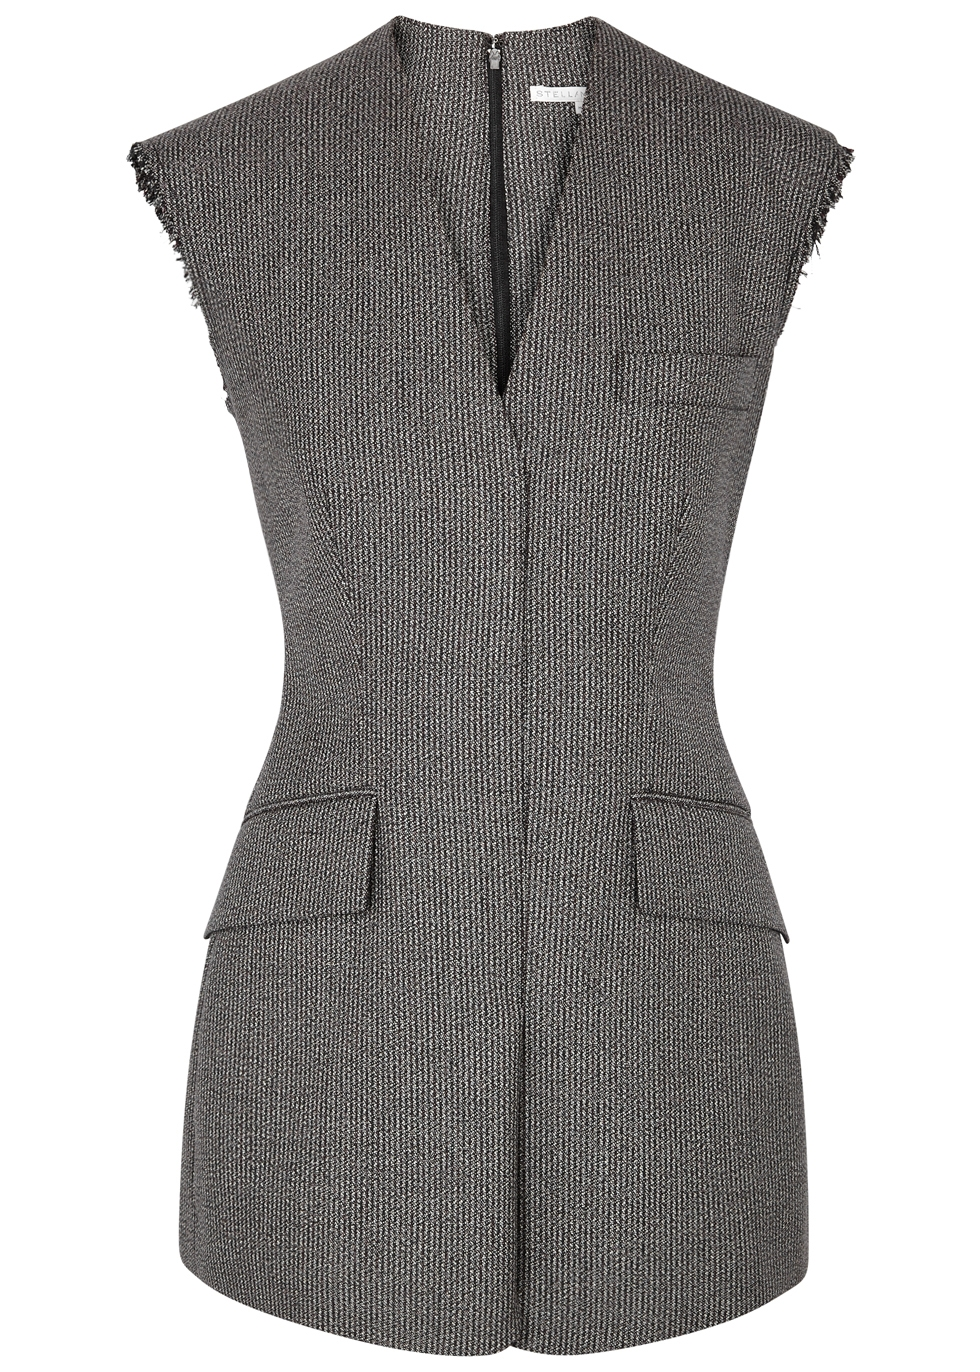 Wool And Cotton-Blend Sleeveless Jacket in Black